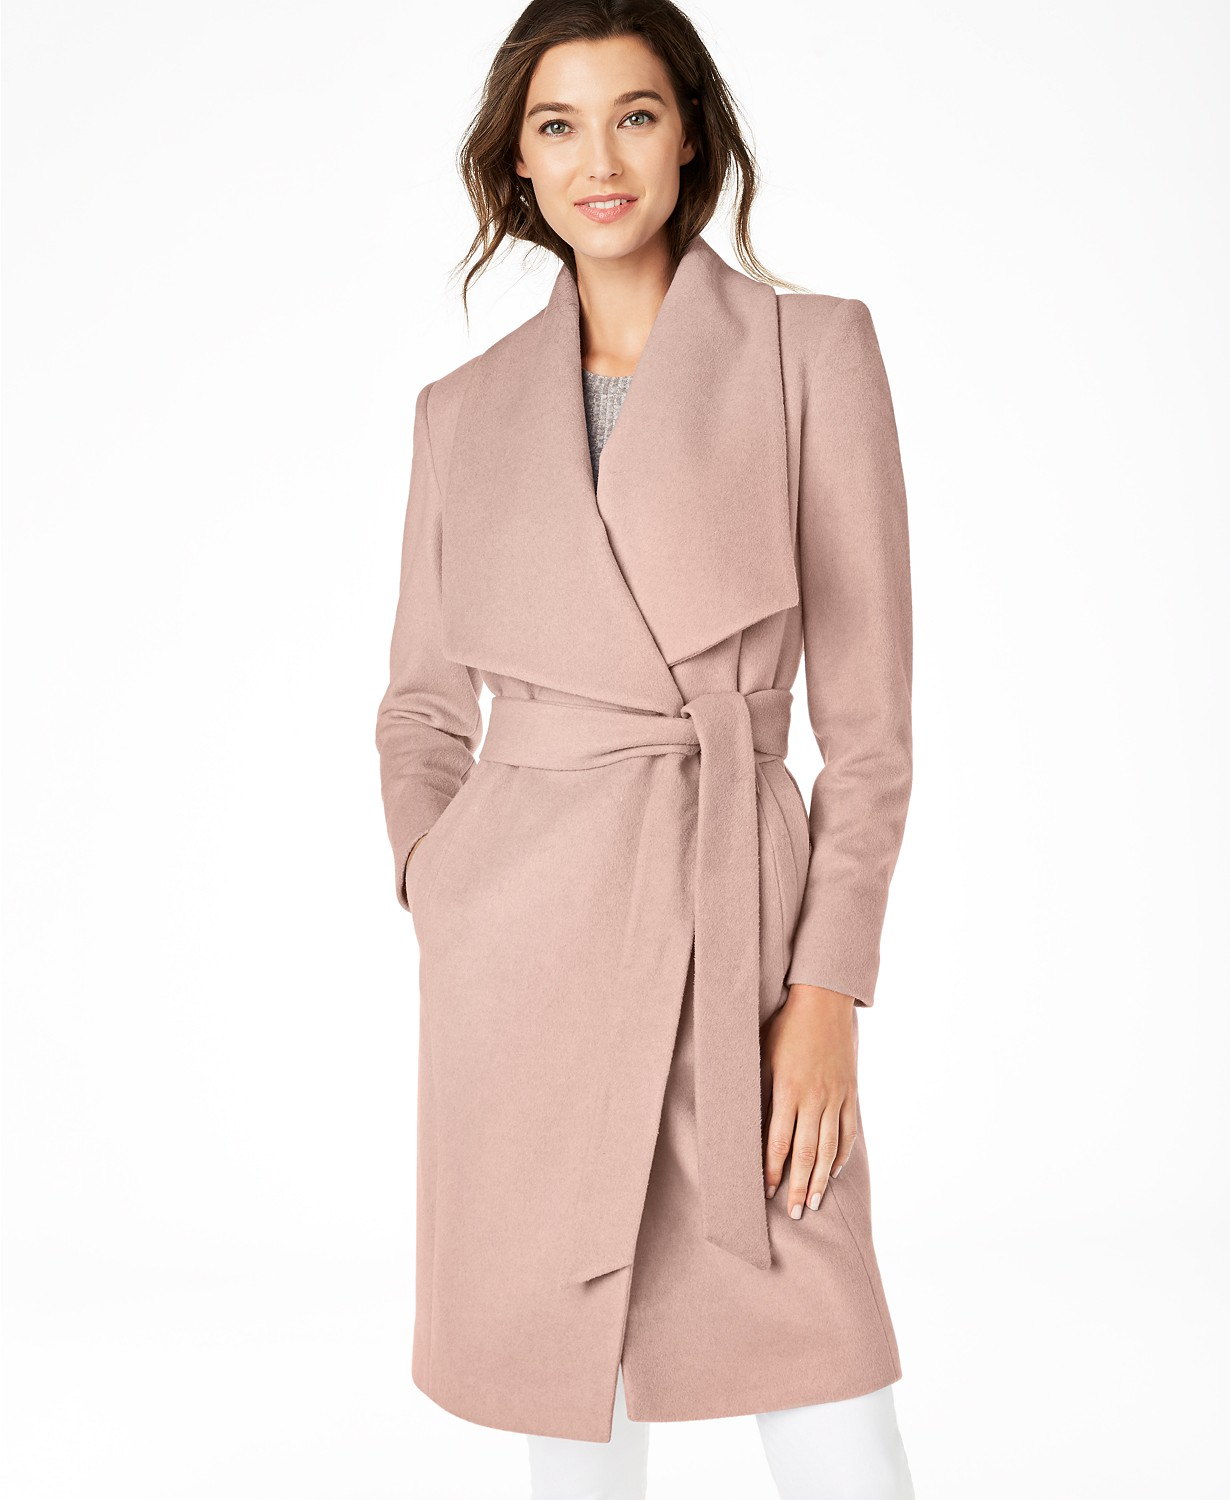 Macy's / Women / Offer code VIP Coats